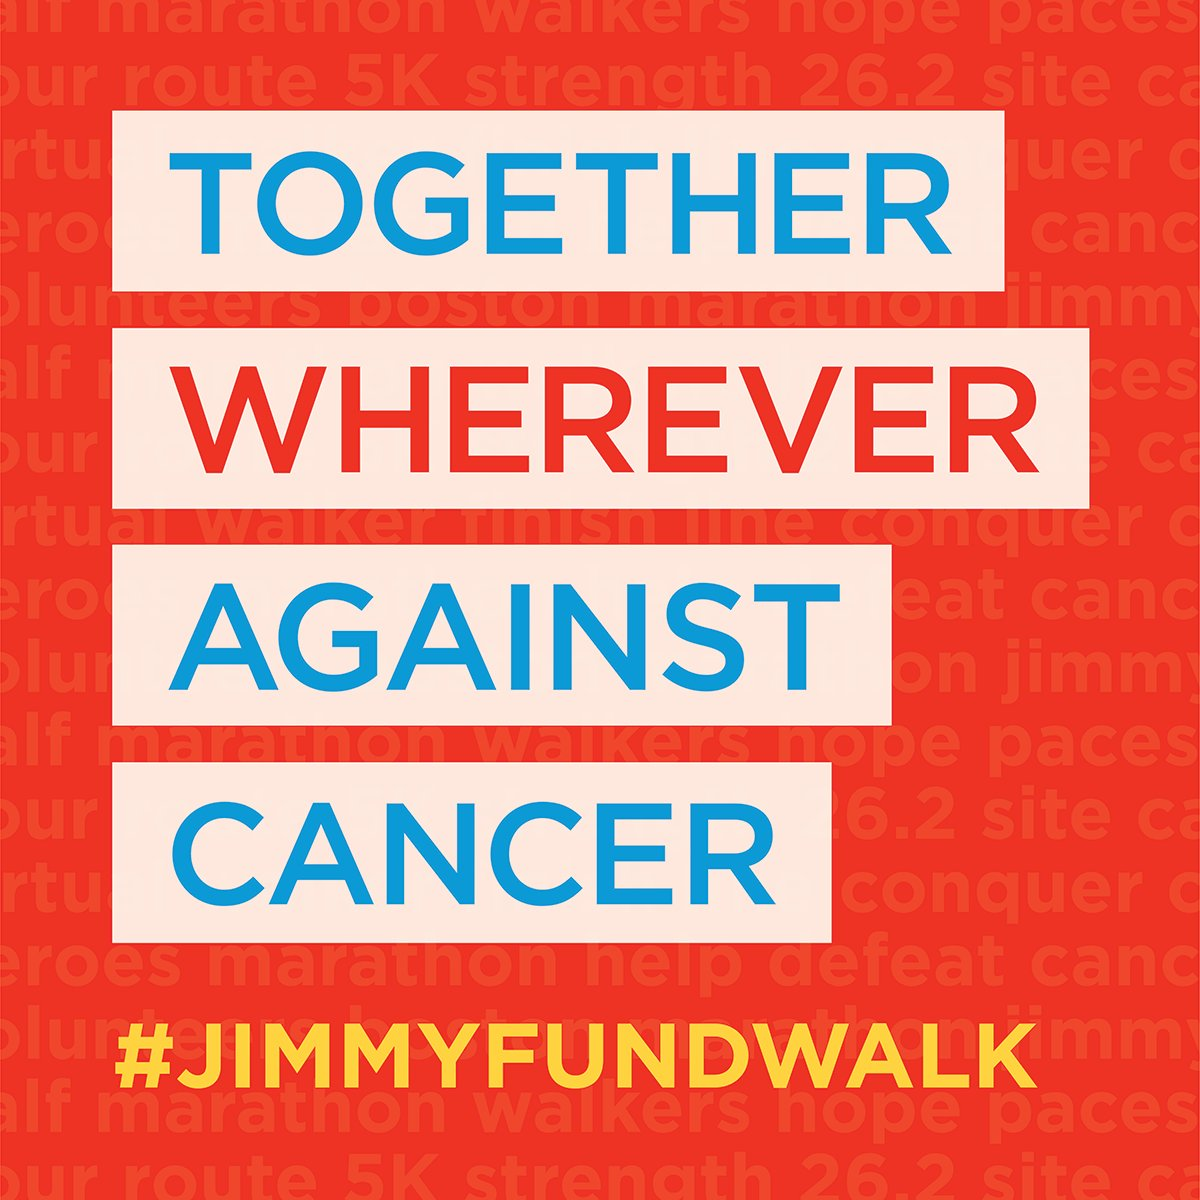 Register today for the #BostonMarathon @TheJimmyFund Walk on Sunday, 10.4. While the event won't physically be on the course this year, it will continue to raise funds for pediatric and adult cancer research at @DanaFarber. Register now at https://t.co/L99Zj2l6Op. #JimmyFundWalk https://t.co/BDMqNpge1h